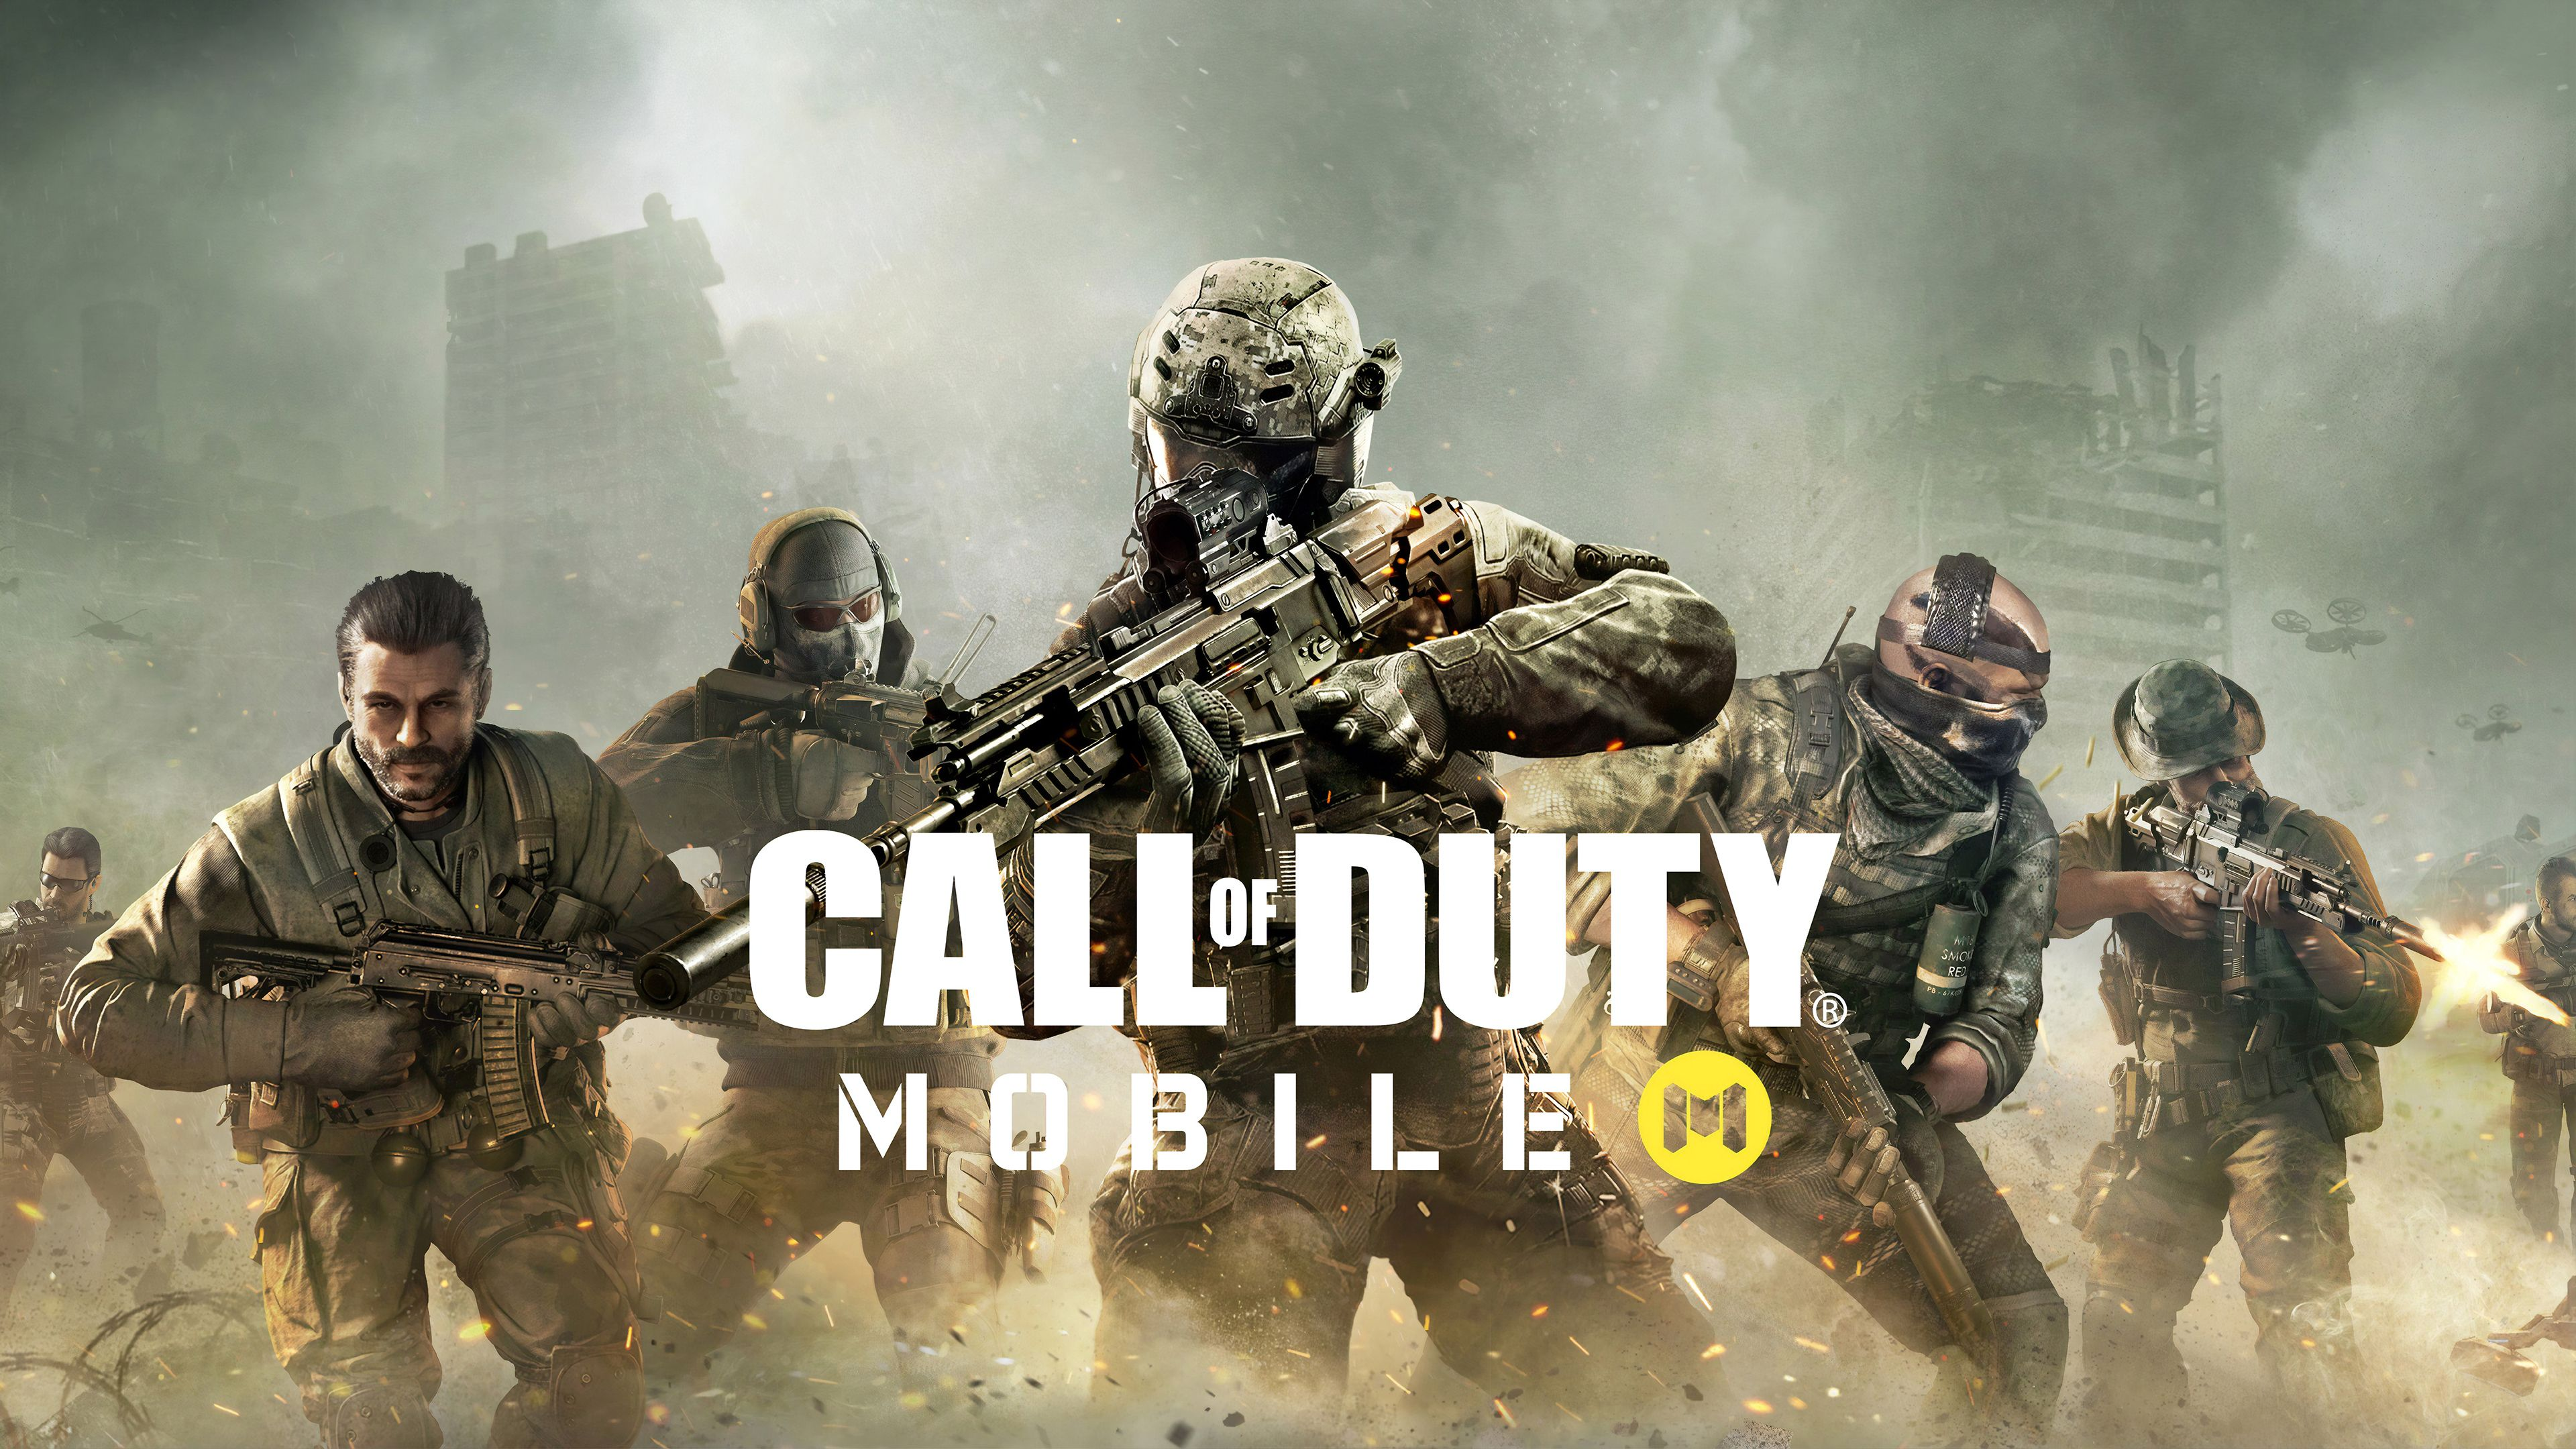 Call of Duty Mobile Wallpapers   Top Call of Duty Mobile 3840x2160